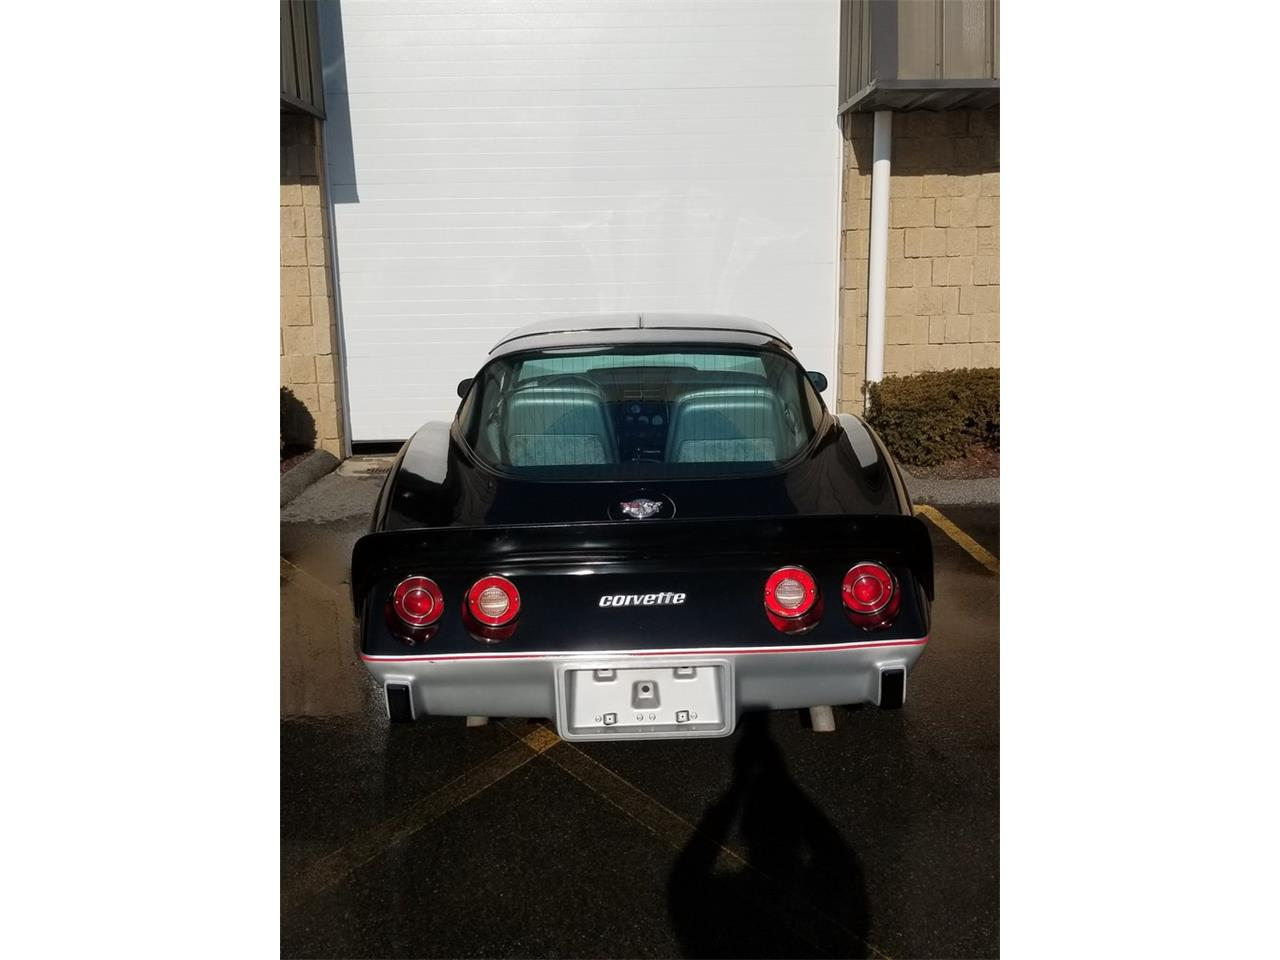 1978 Chevrolet Corvette for sale in Wallingford, CT – photo 8